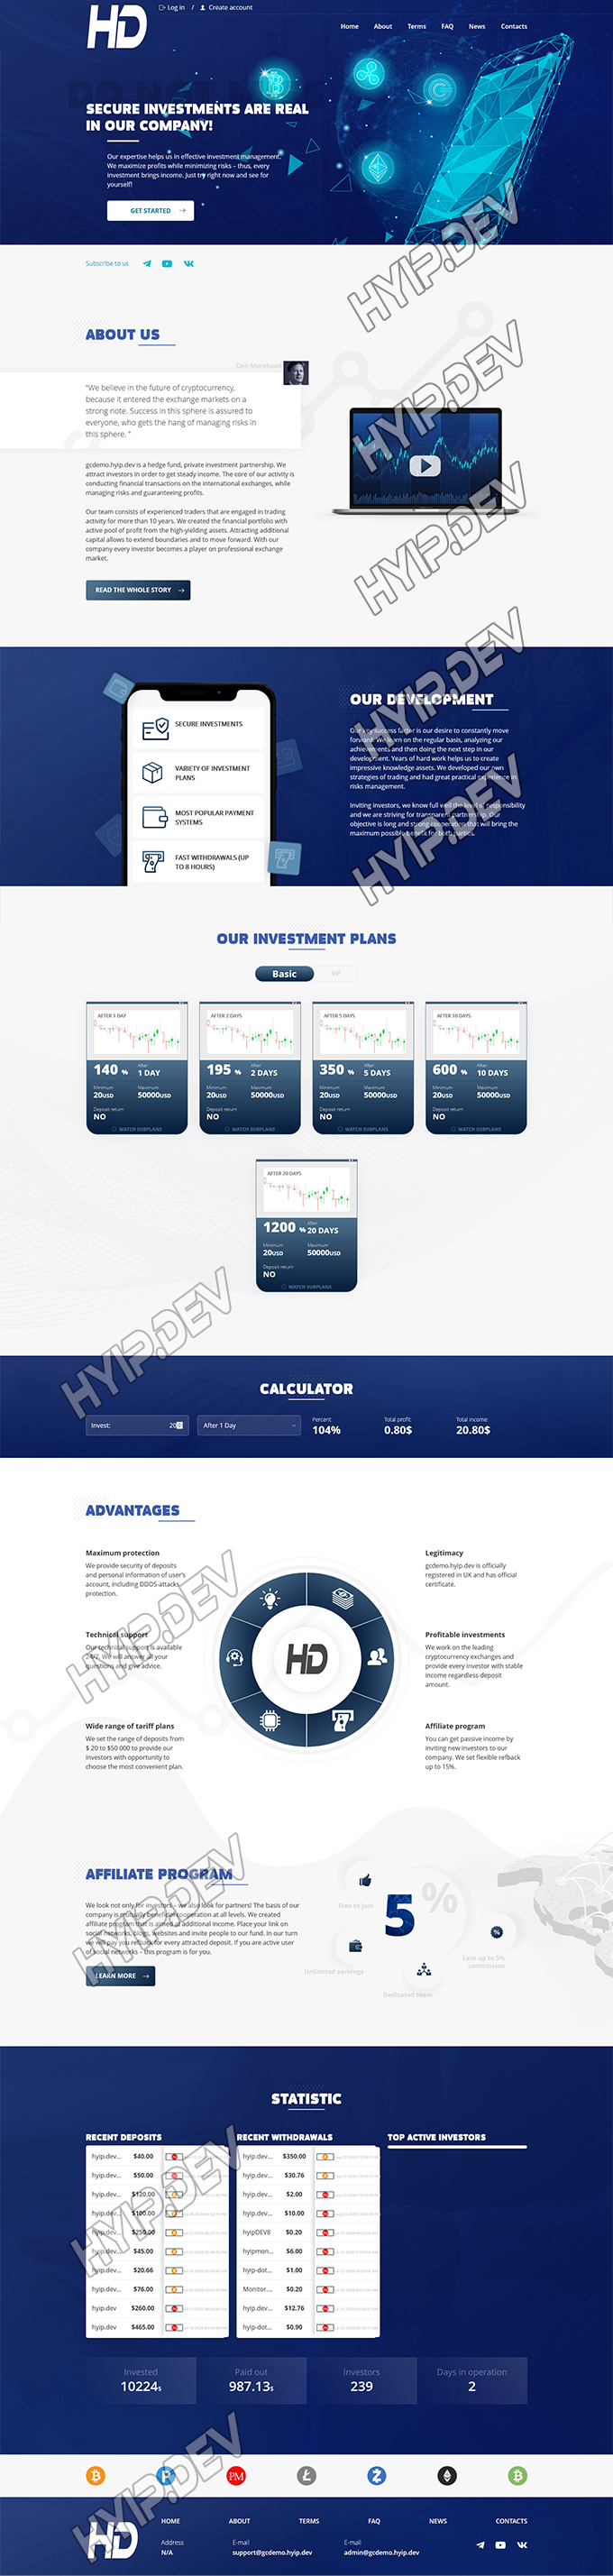 goldcoders hyip template no. 128, home page screenshot